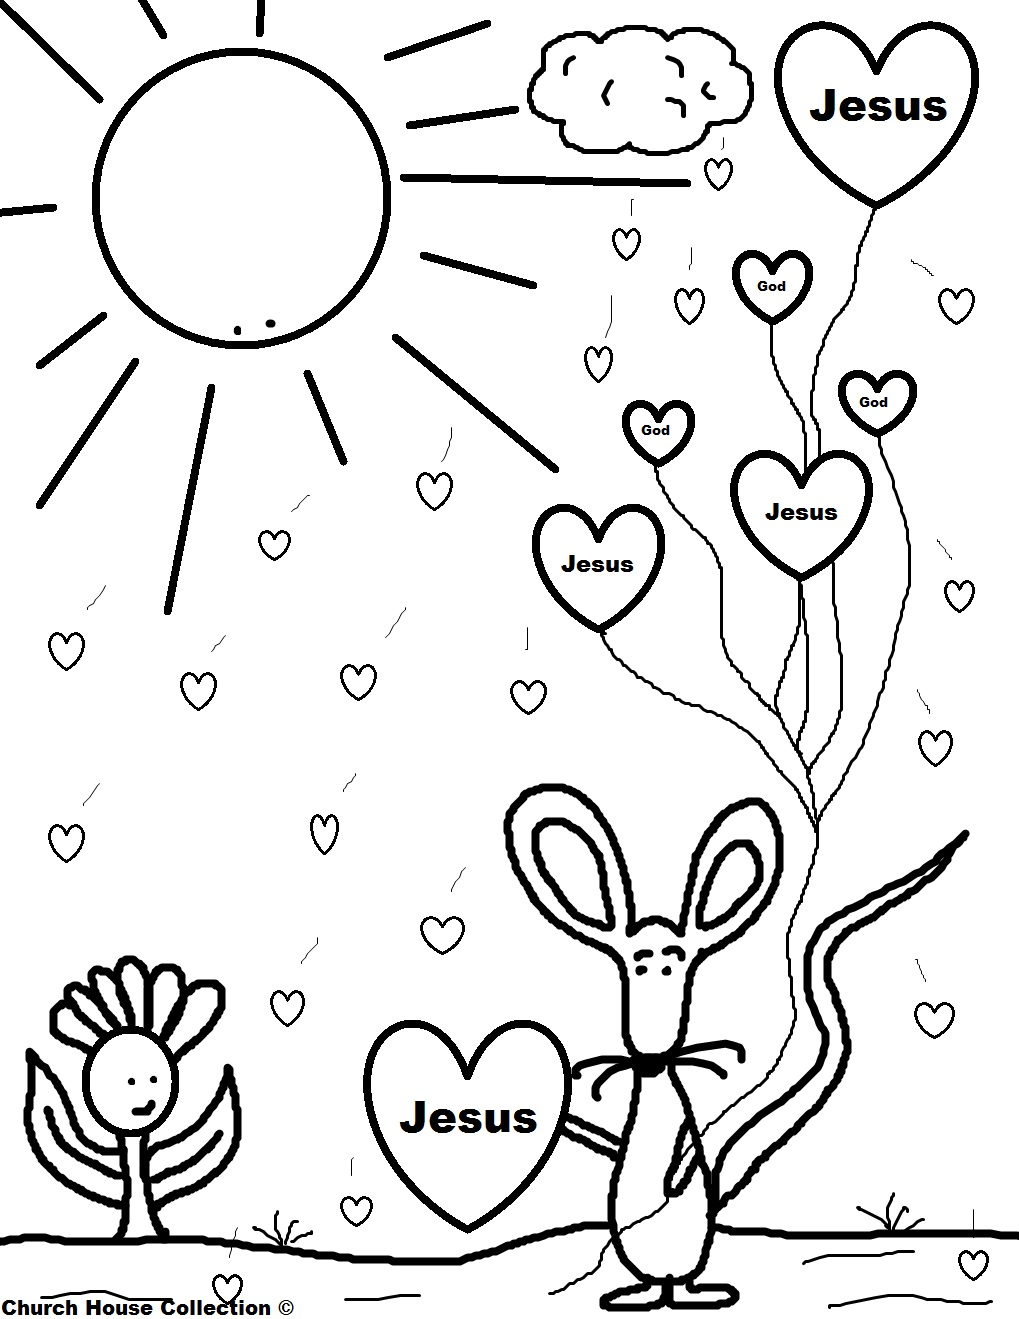 church house collection blog valentine mouse holding jesus